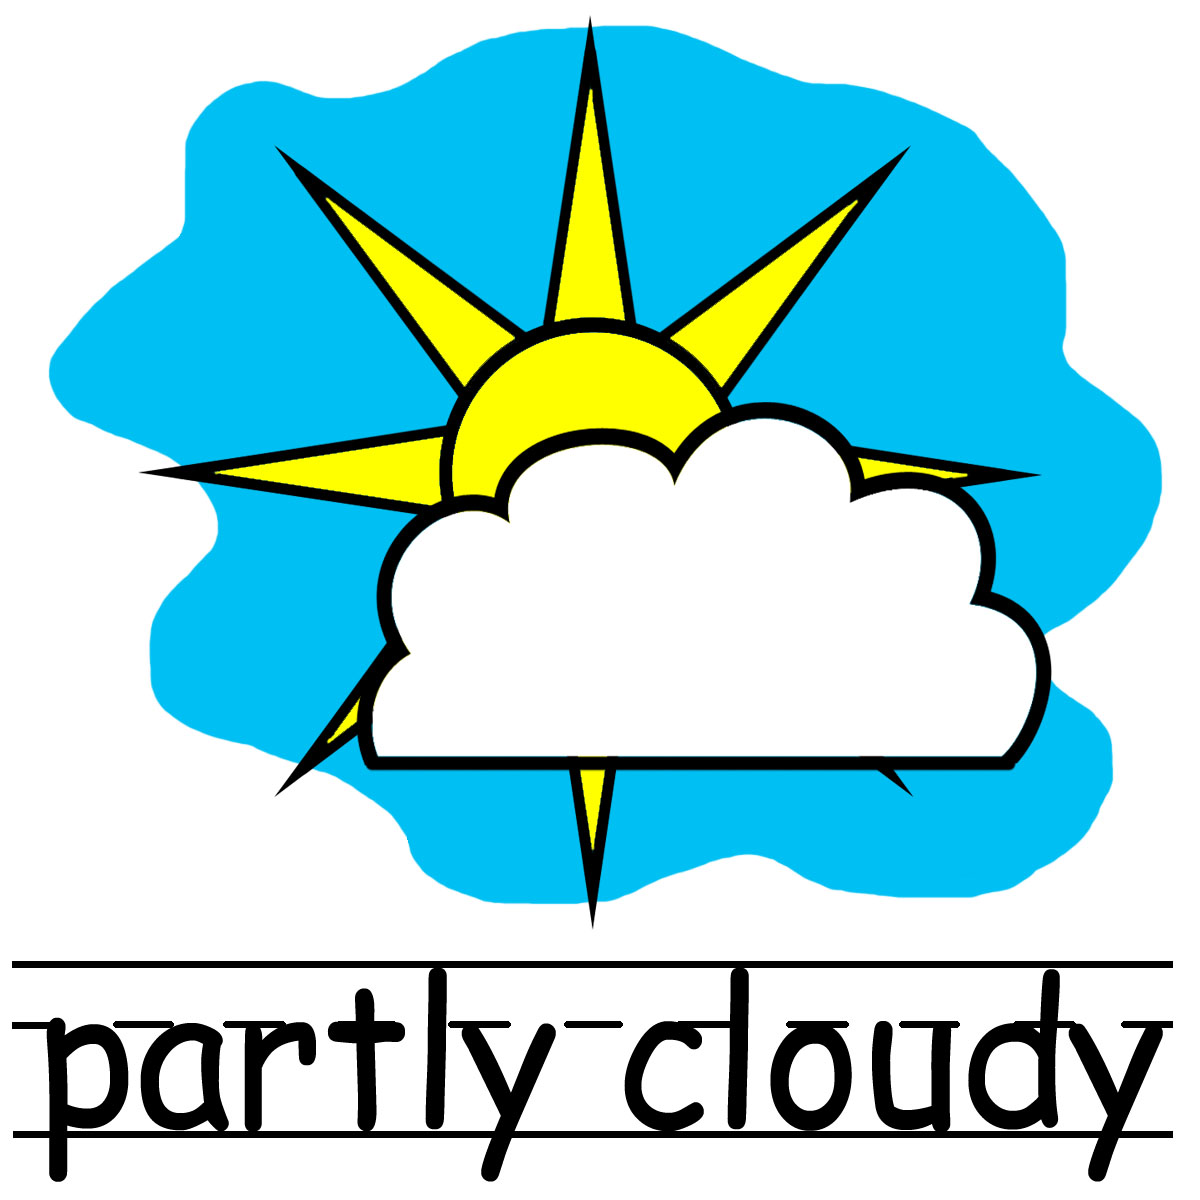 Weather Clip Art For Teachers | Clipart library - Free Clipart Images